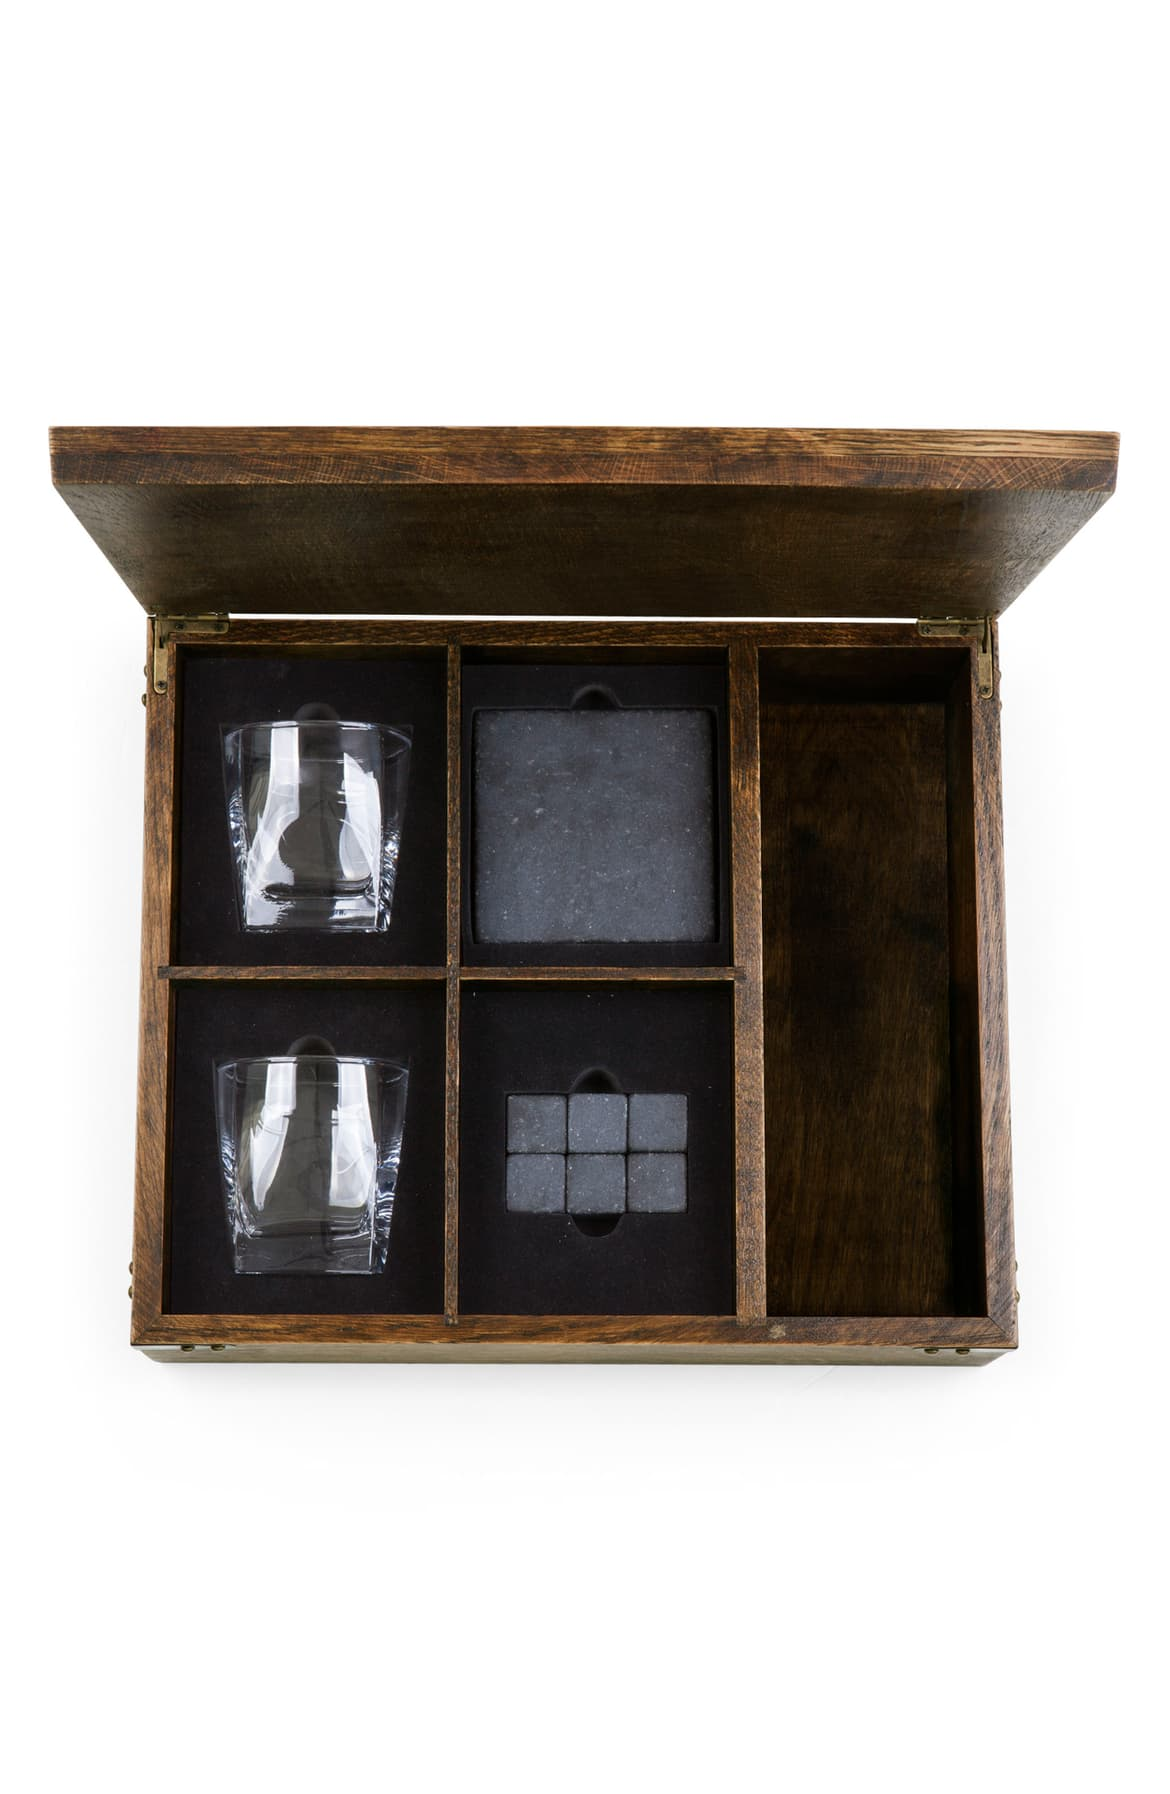 <p>Perfect for the man cave, we love this 11-Piece Whiskey Box Gift Set for $155.95. This complete whiskey set makes a handsome addition to any home bar and includes all the essentials for enjoying your favorite whiskey in style. (Image: Nordstrom){&nbsp;}</p><p></p>